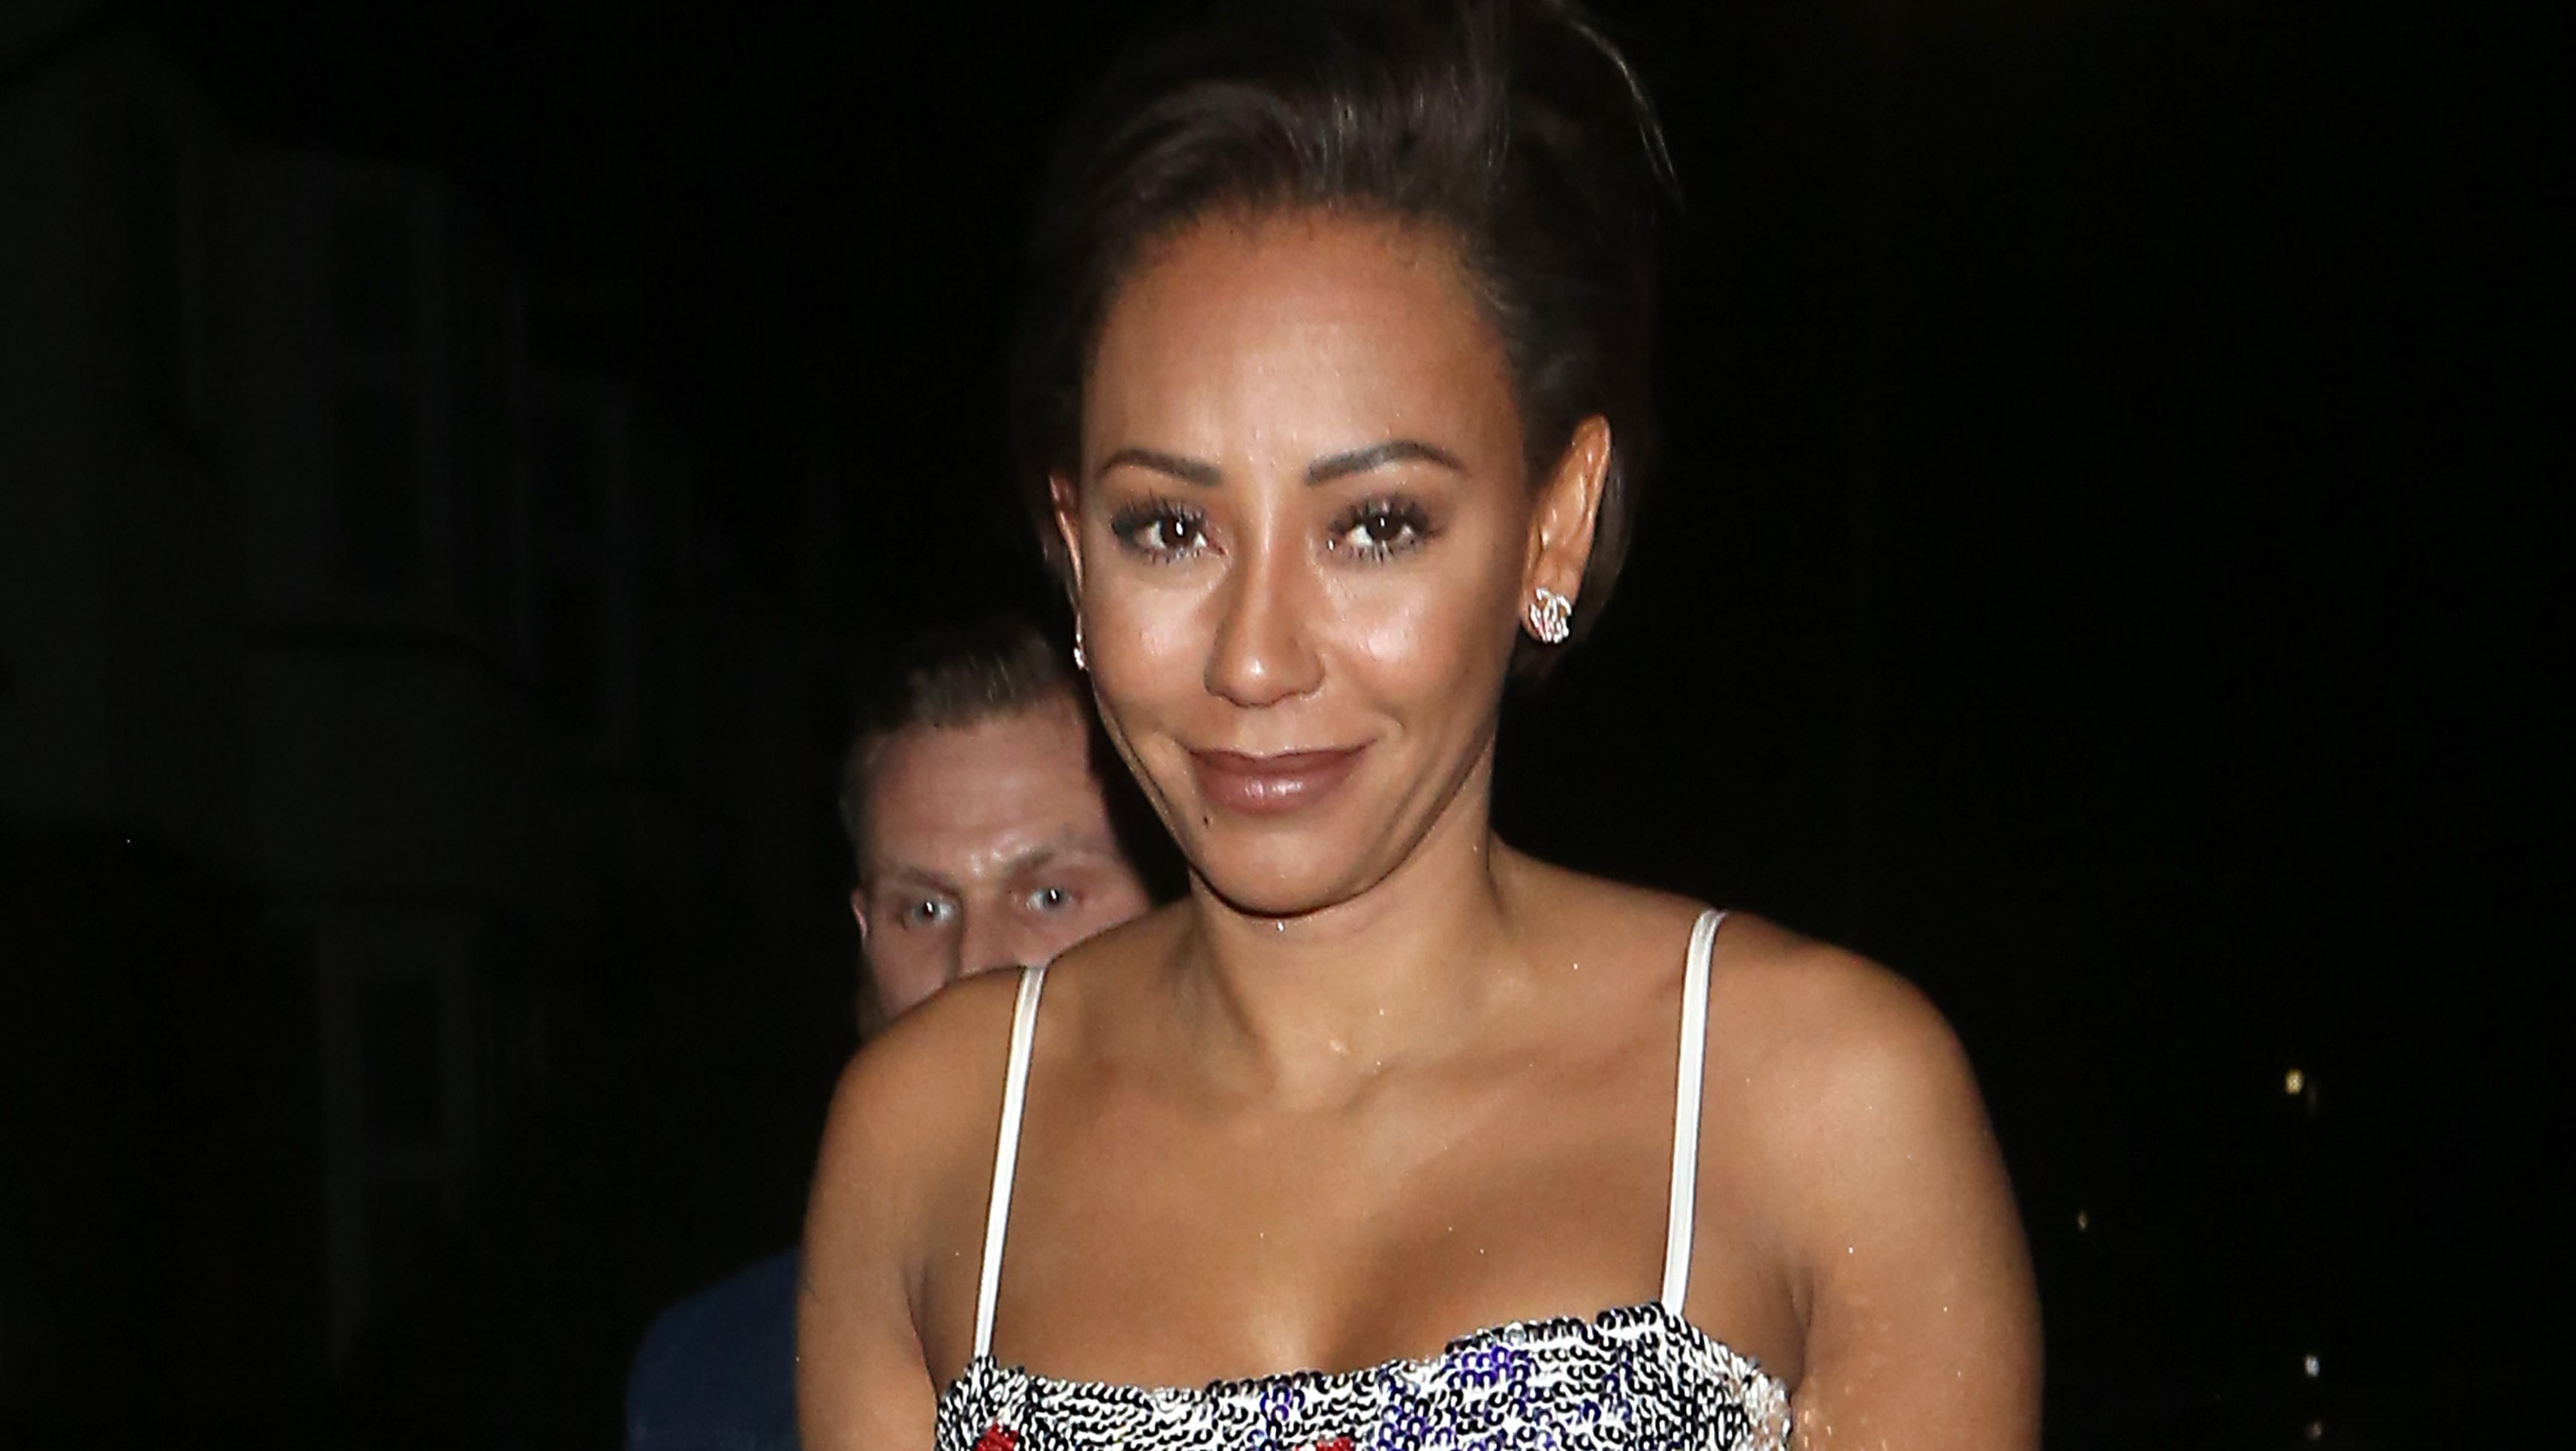 Mel B rushed to hospital after losing sight in one eye